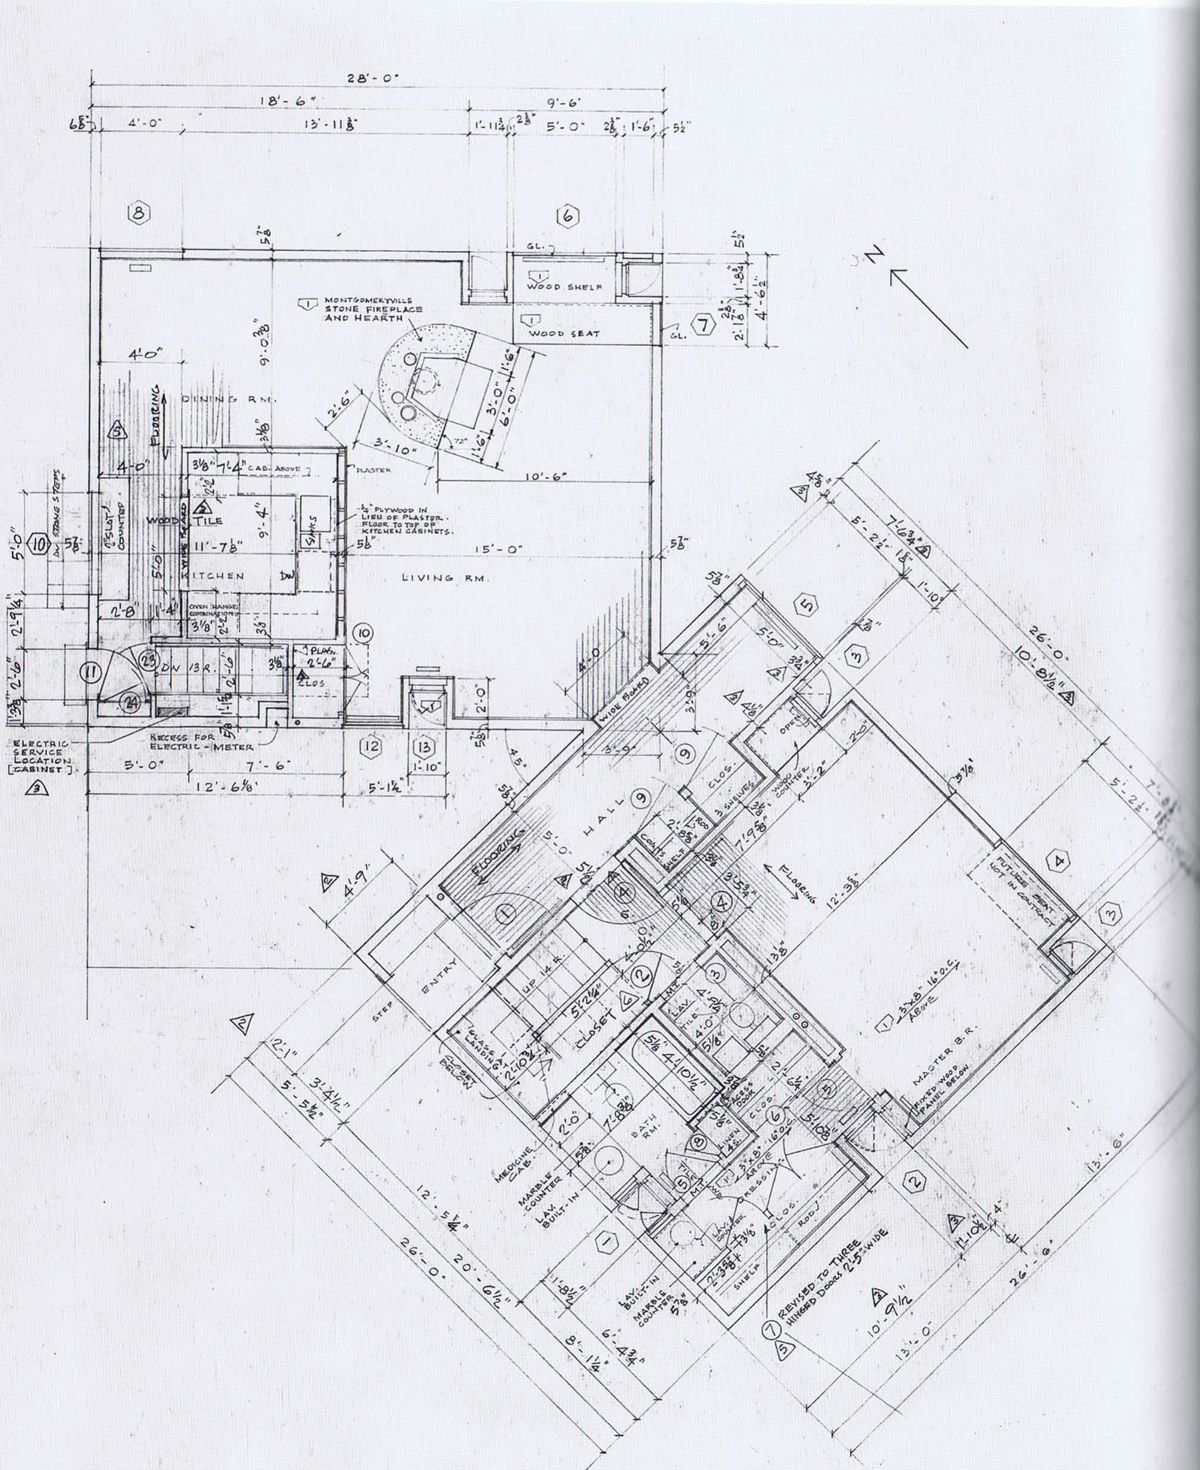 Louis kahn fisher house hic arquitectura houseplans for Property plans drawings